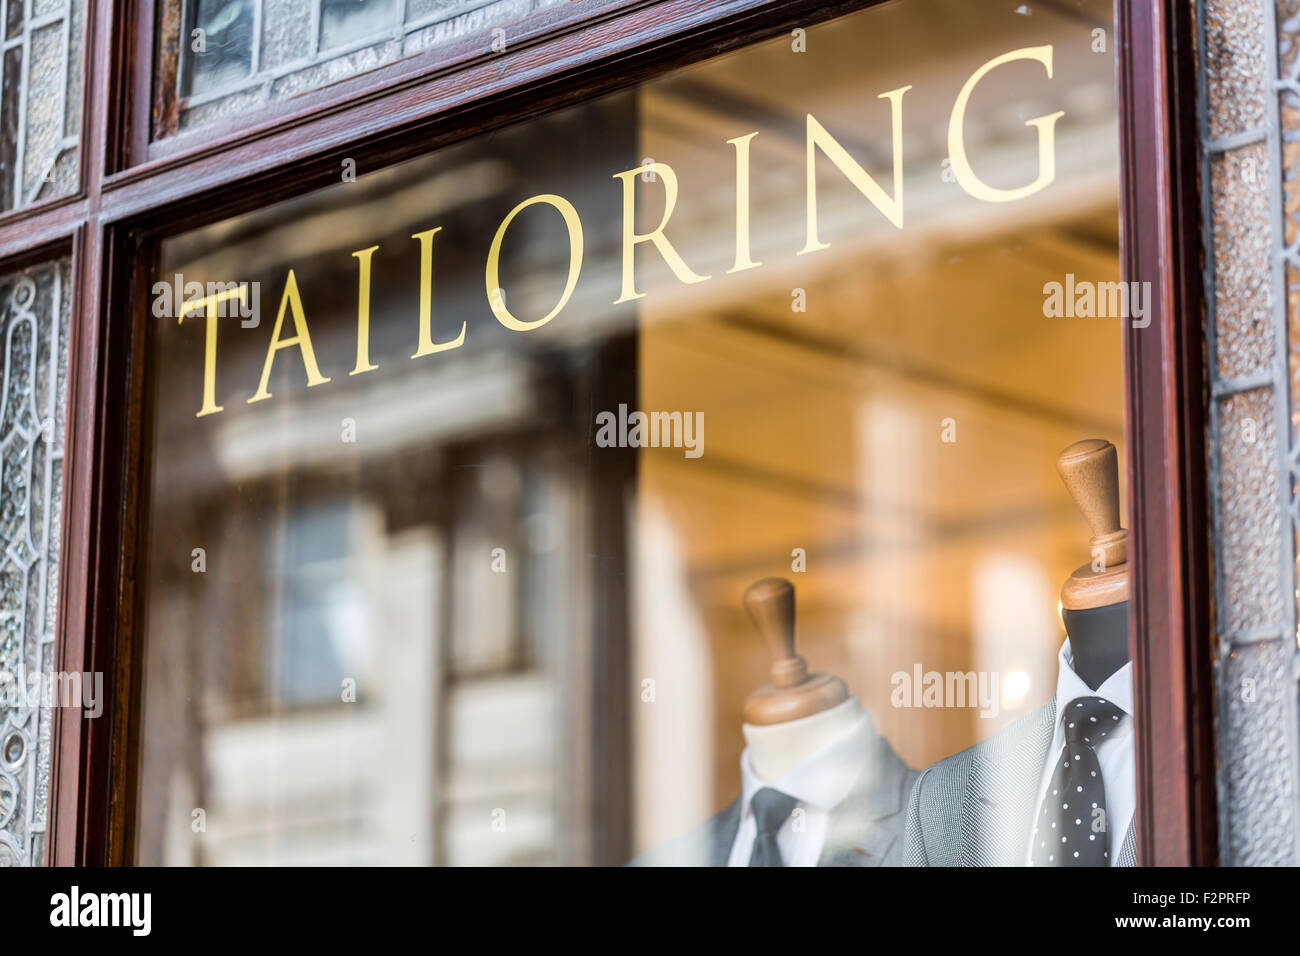 A tailoring sign on a shop window, Scotland, UK - Stock Image